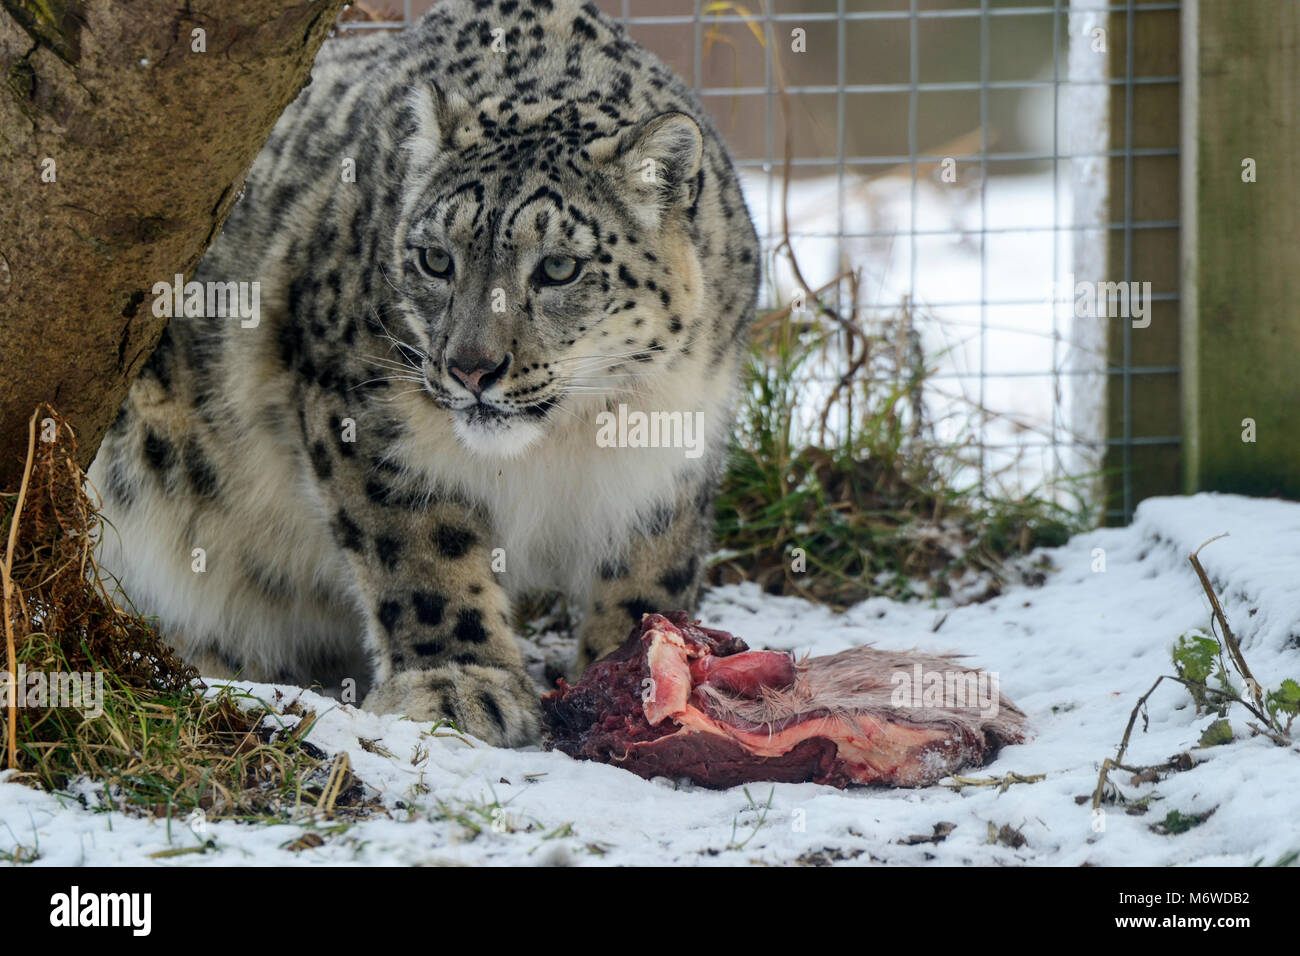 Feeding time for captive snow leopard (Panthera uncia) at Highland Wildlife Park, Kincraig, Kingussie, Scotland, - Stock Image